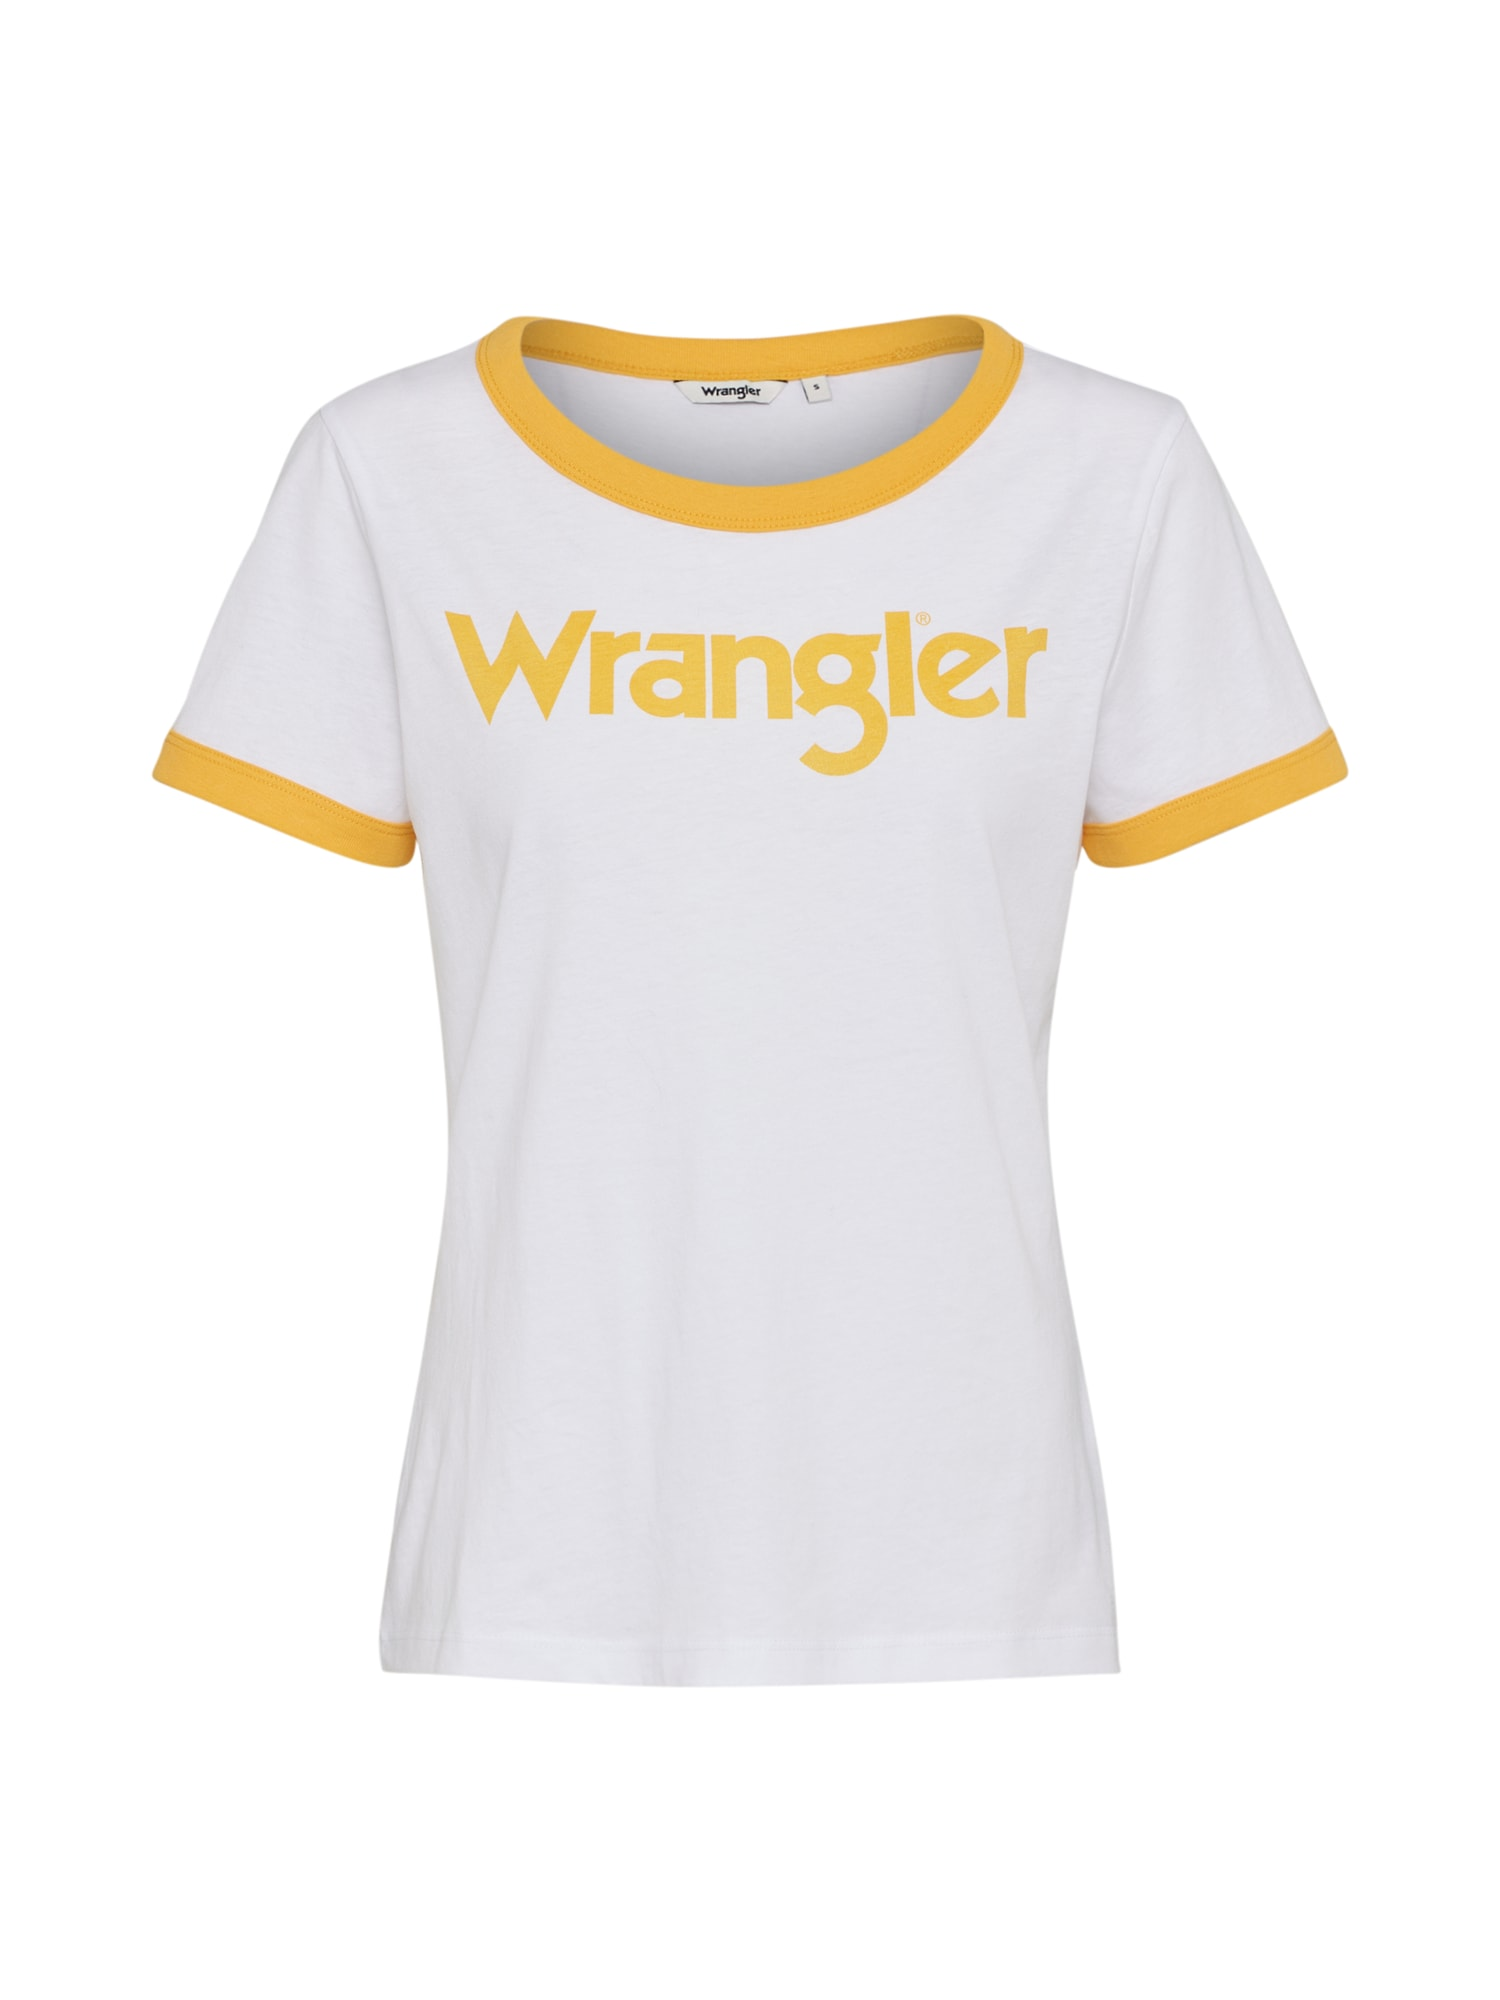 WRANGLER Dames Shirt RETRO KABEL goudgeel wit